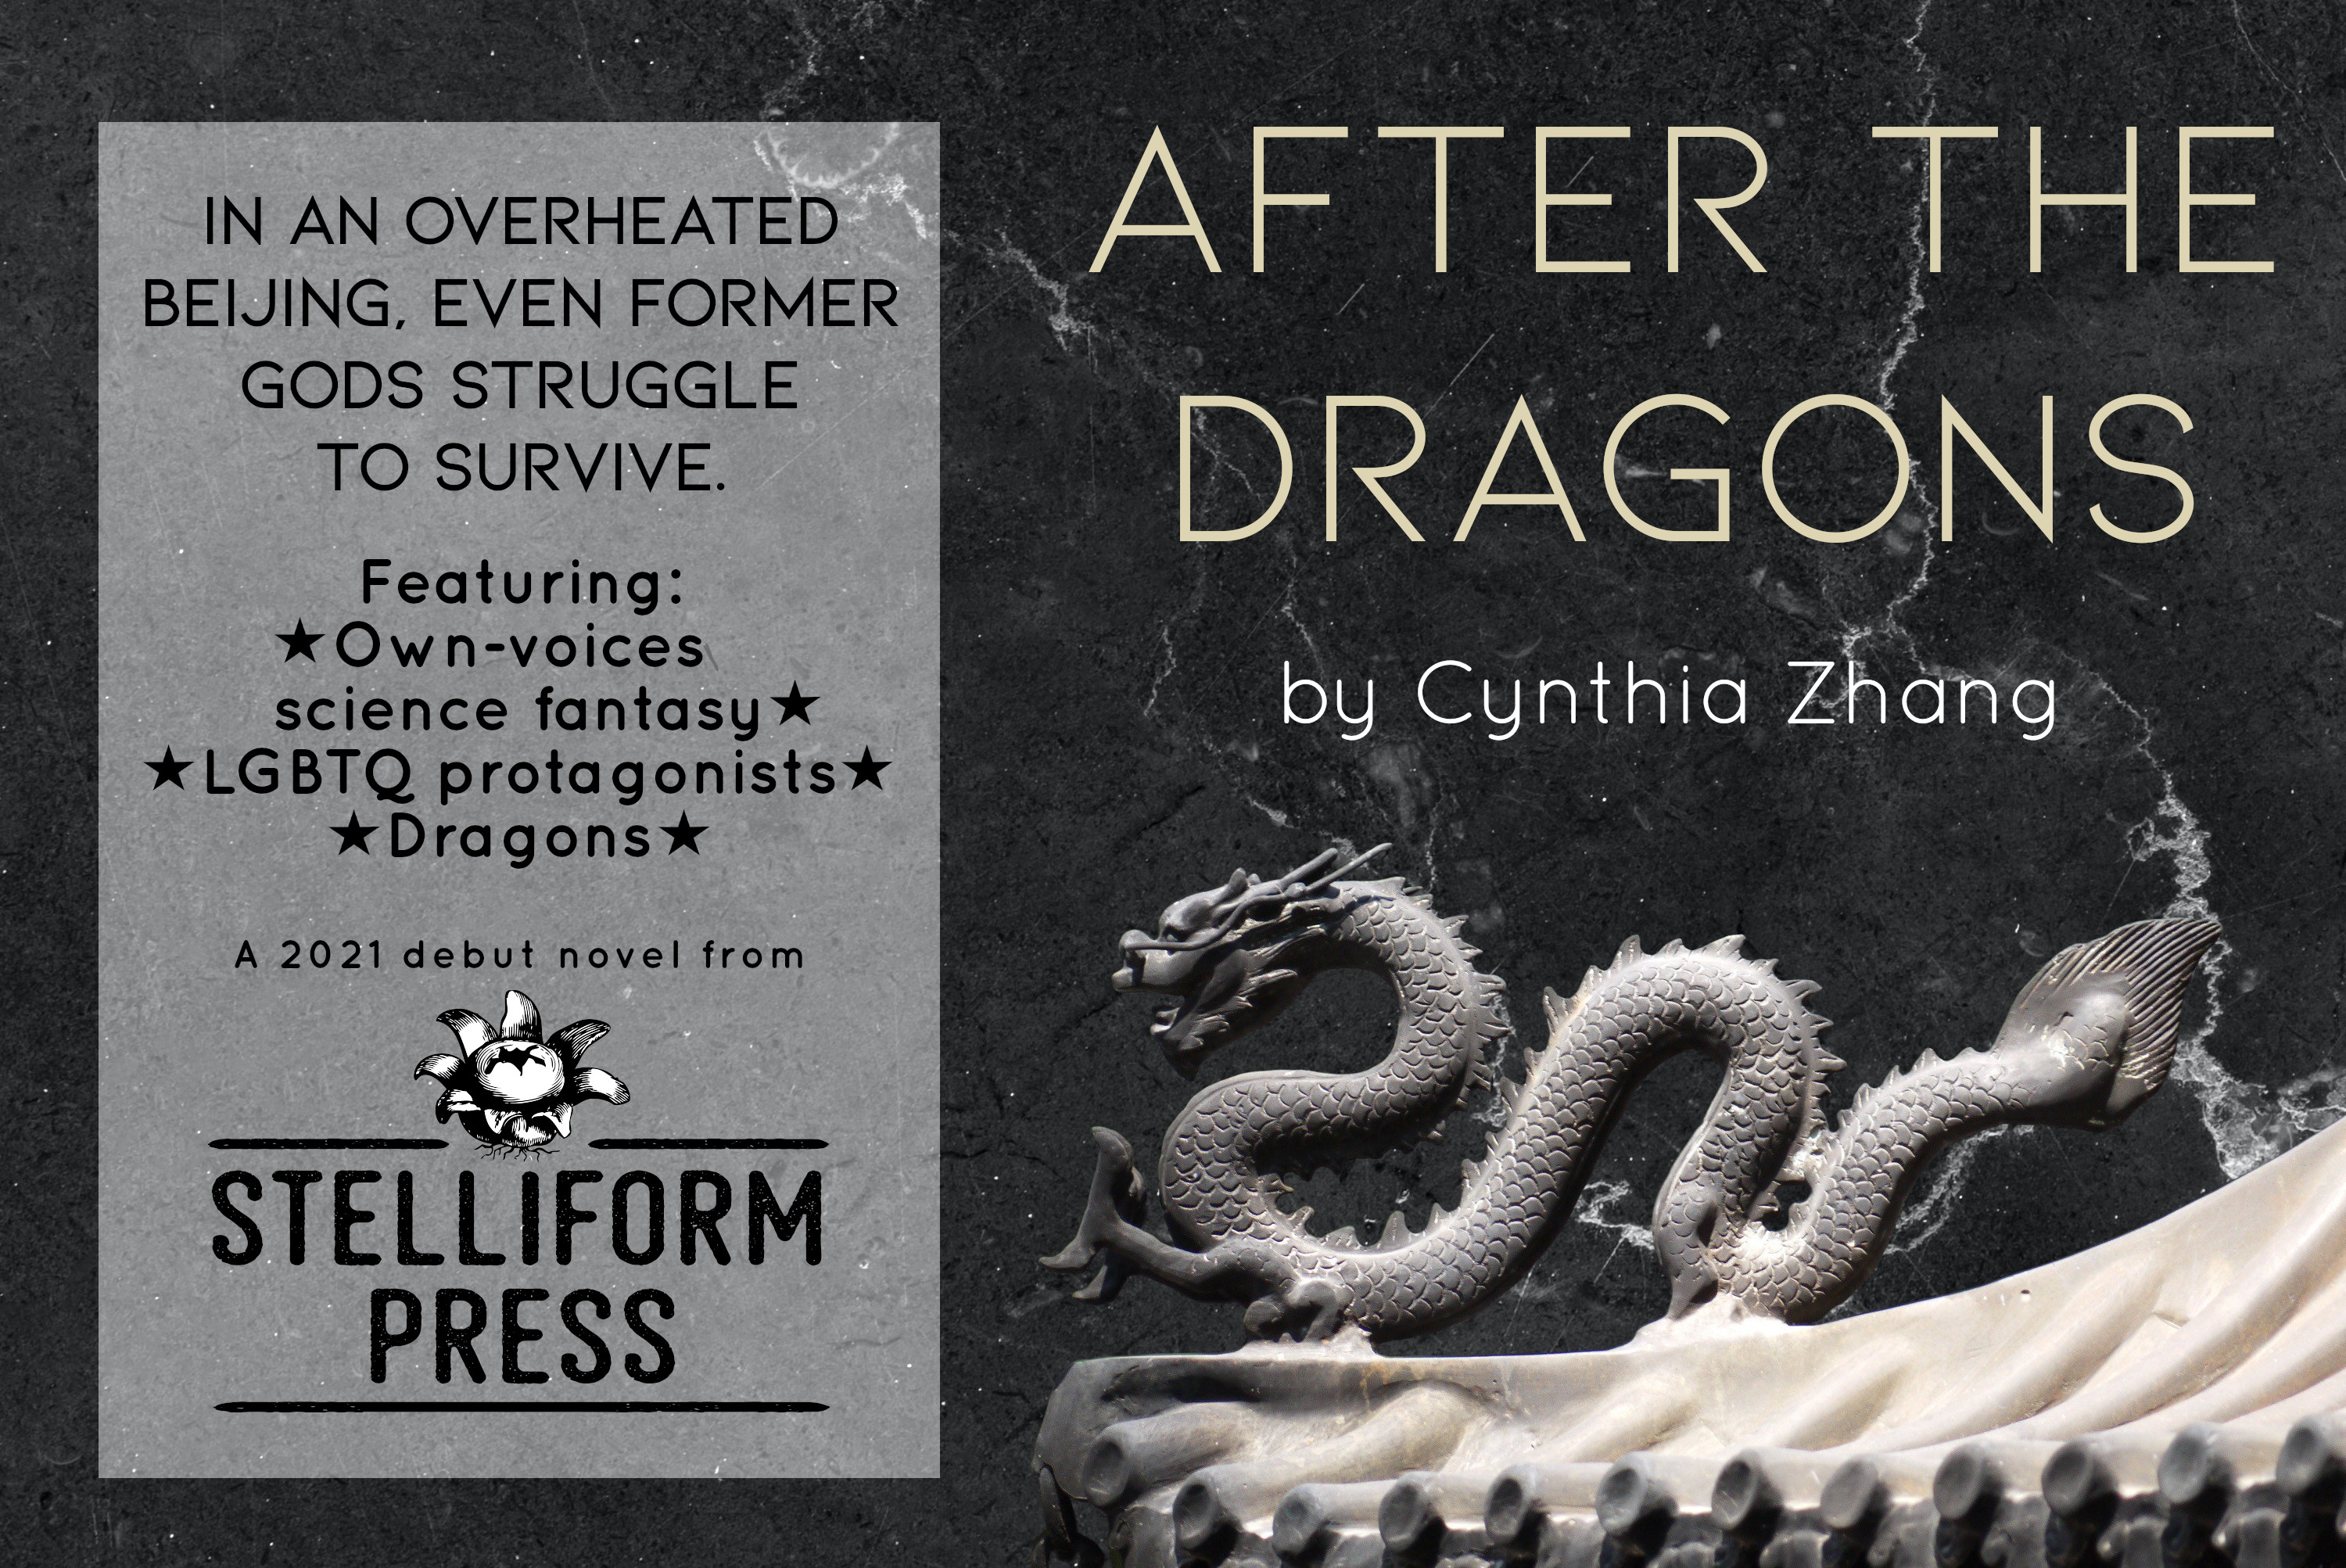 Stone dragon on a black marble background. TEXT: After the Dragons by Cynthia Zhang. In an overheated Beijing, even former gods struggle to survive. Featuring: own-voices science fantasy, LGBTQ protagonists, dragons. A debut novel from Stelliform Press.